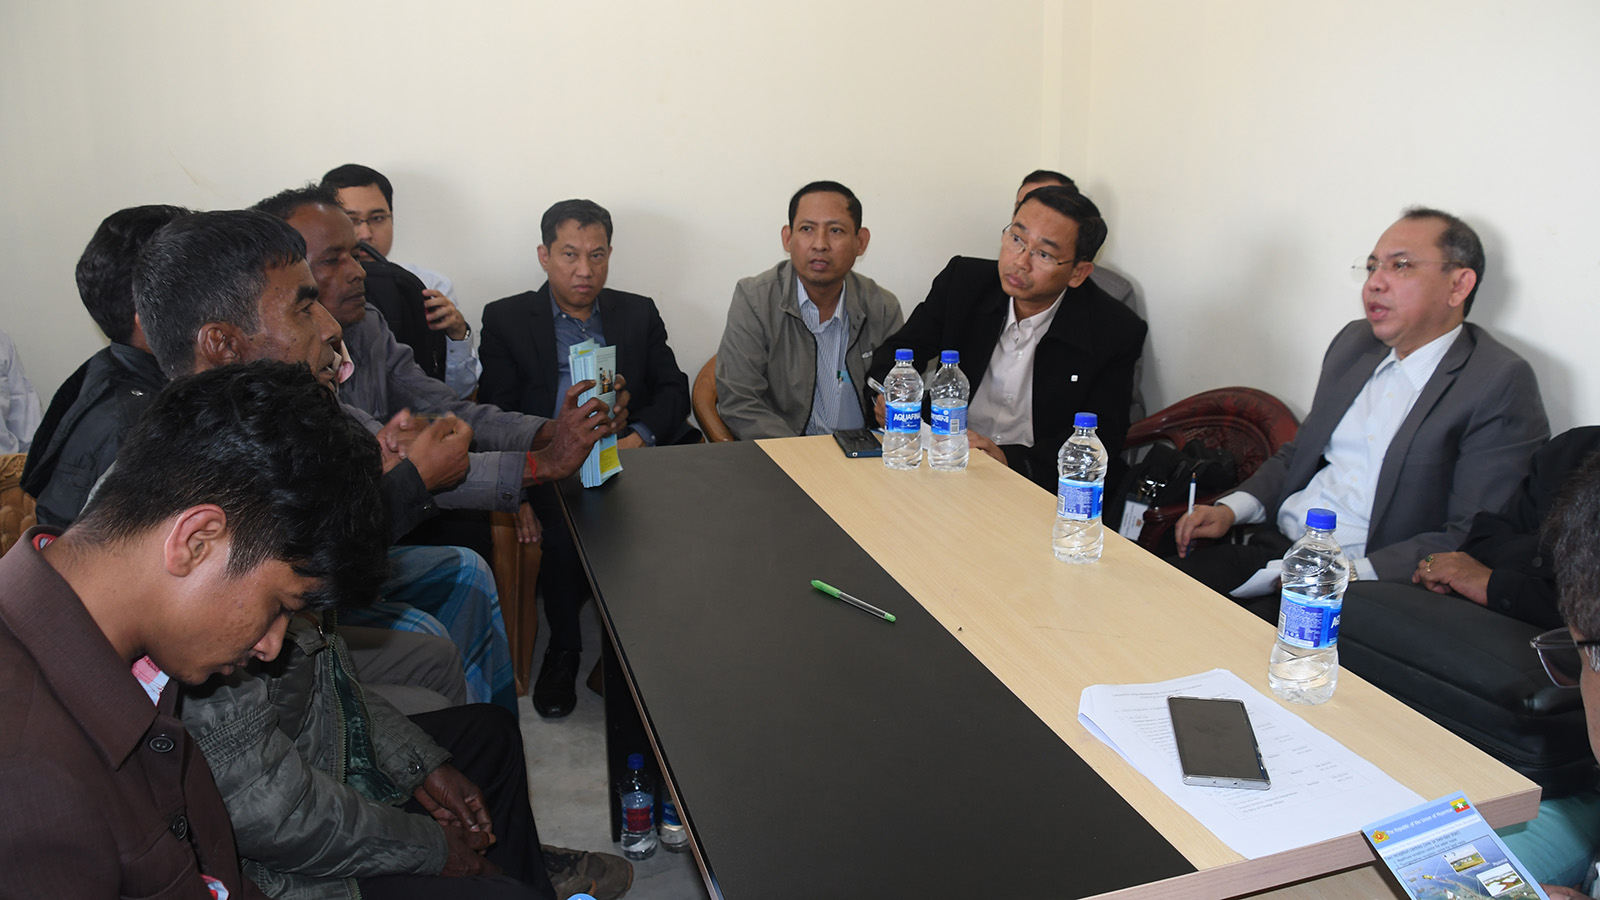 The Myanmar Delegation briefs the displaced persons of Hindu Faith on Government's efforts on repatriation process at the extension of Camp No 4 in Cox's Bazar. Photo: MNA